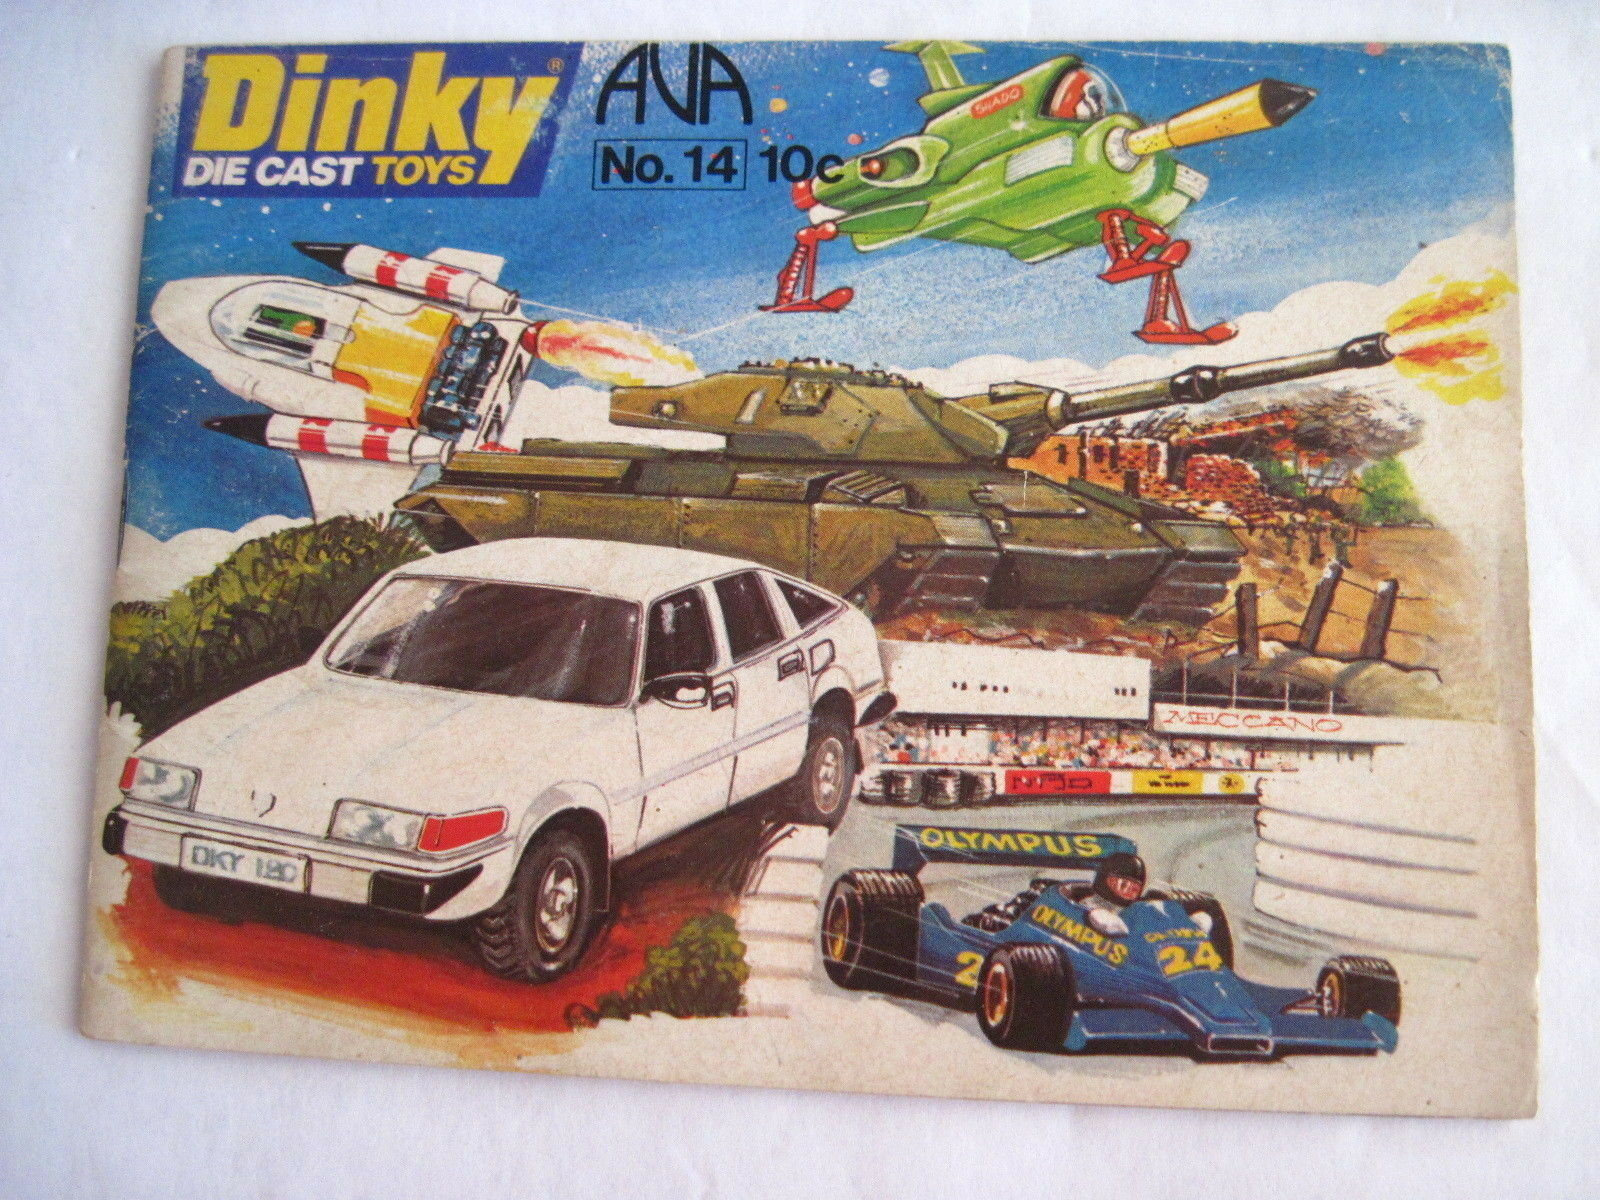 Fantastic 1978  Dinky  Die Cast Toys Catalog - w Spaceships, Army Tanks & Cars *